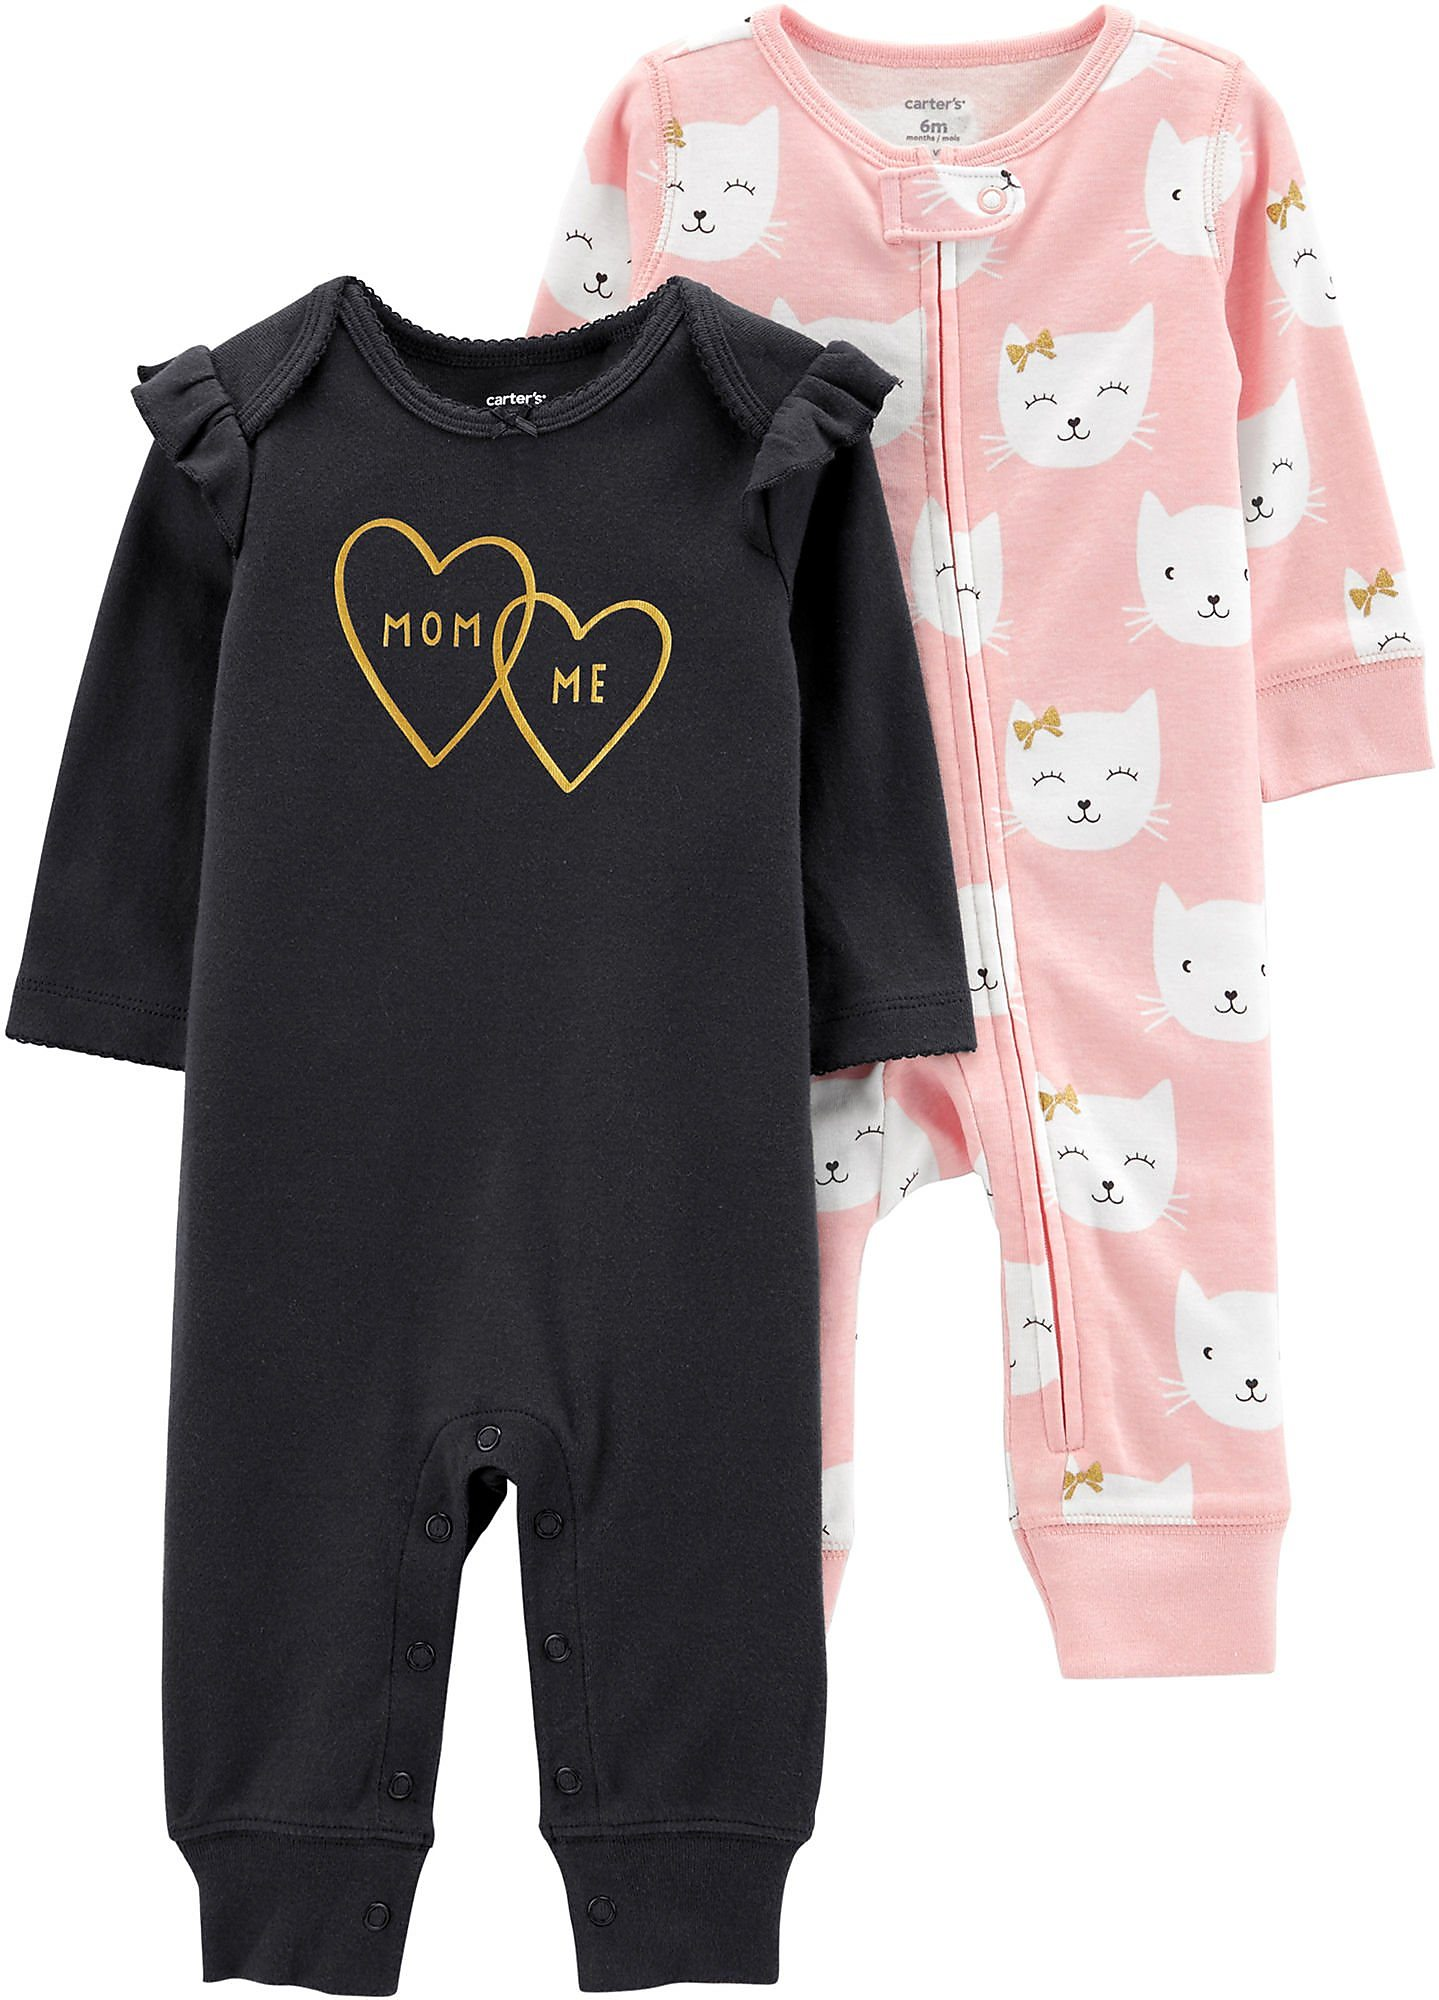 Carters Baby Girls 2 Pk Mom Me Jumpsuits Ebay